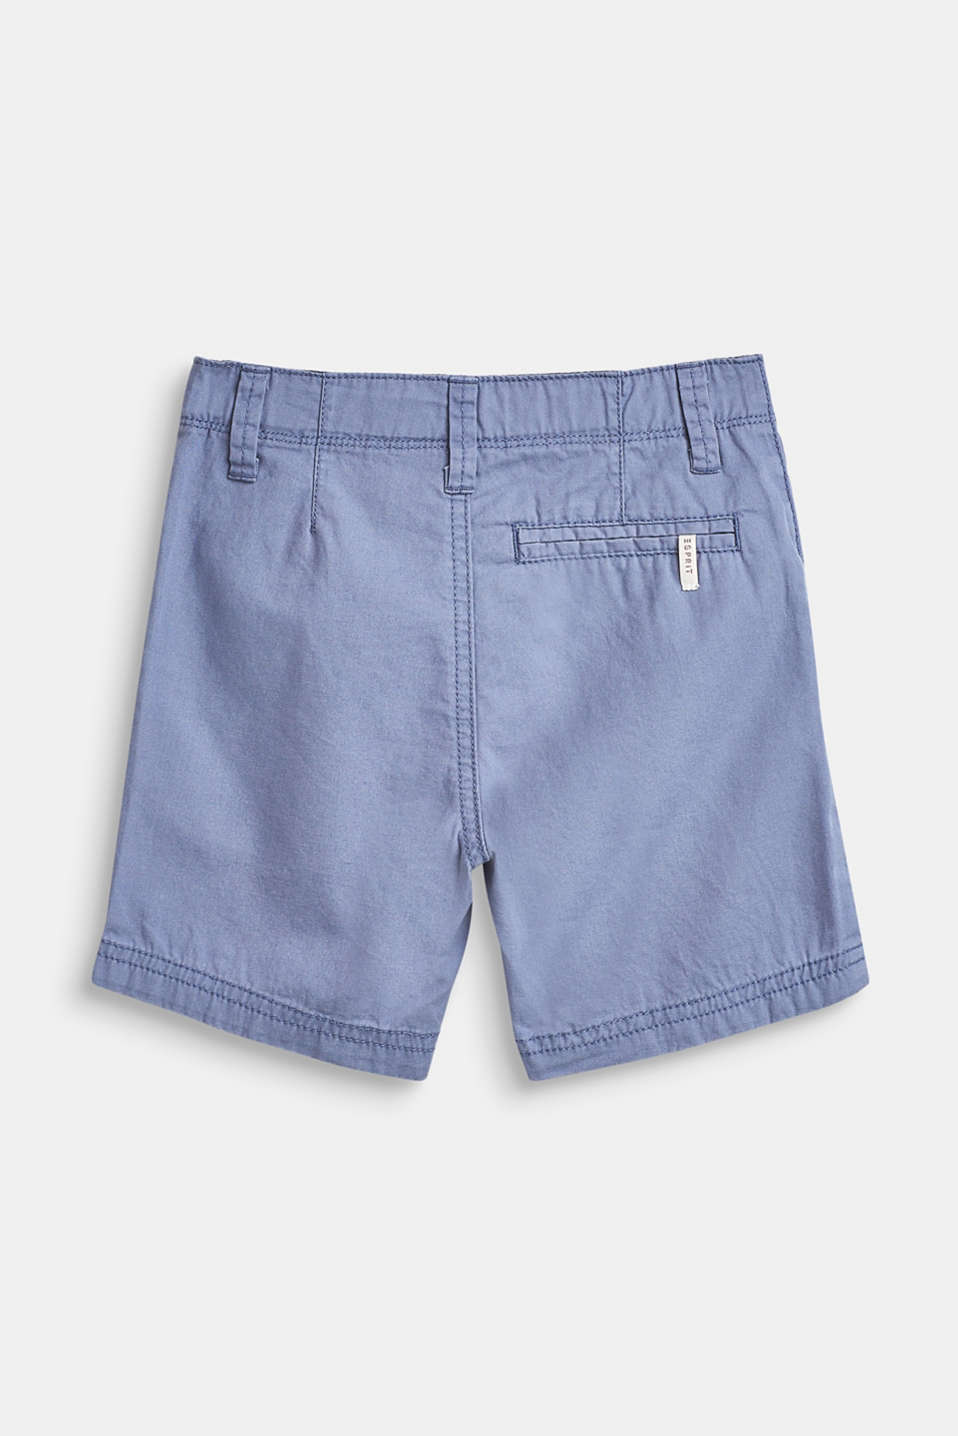 Shorts woven, LCGREY BLUE, detail image number 2